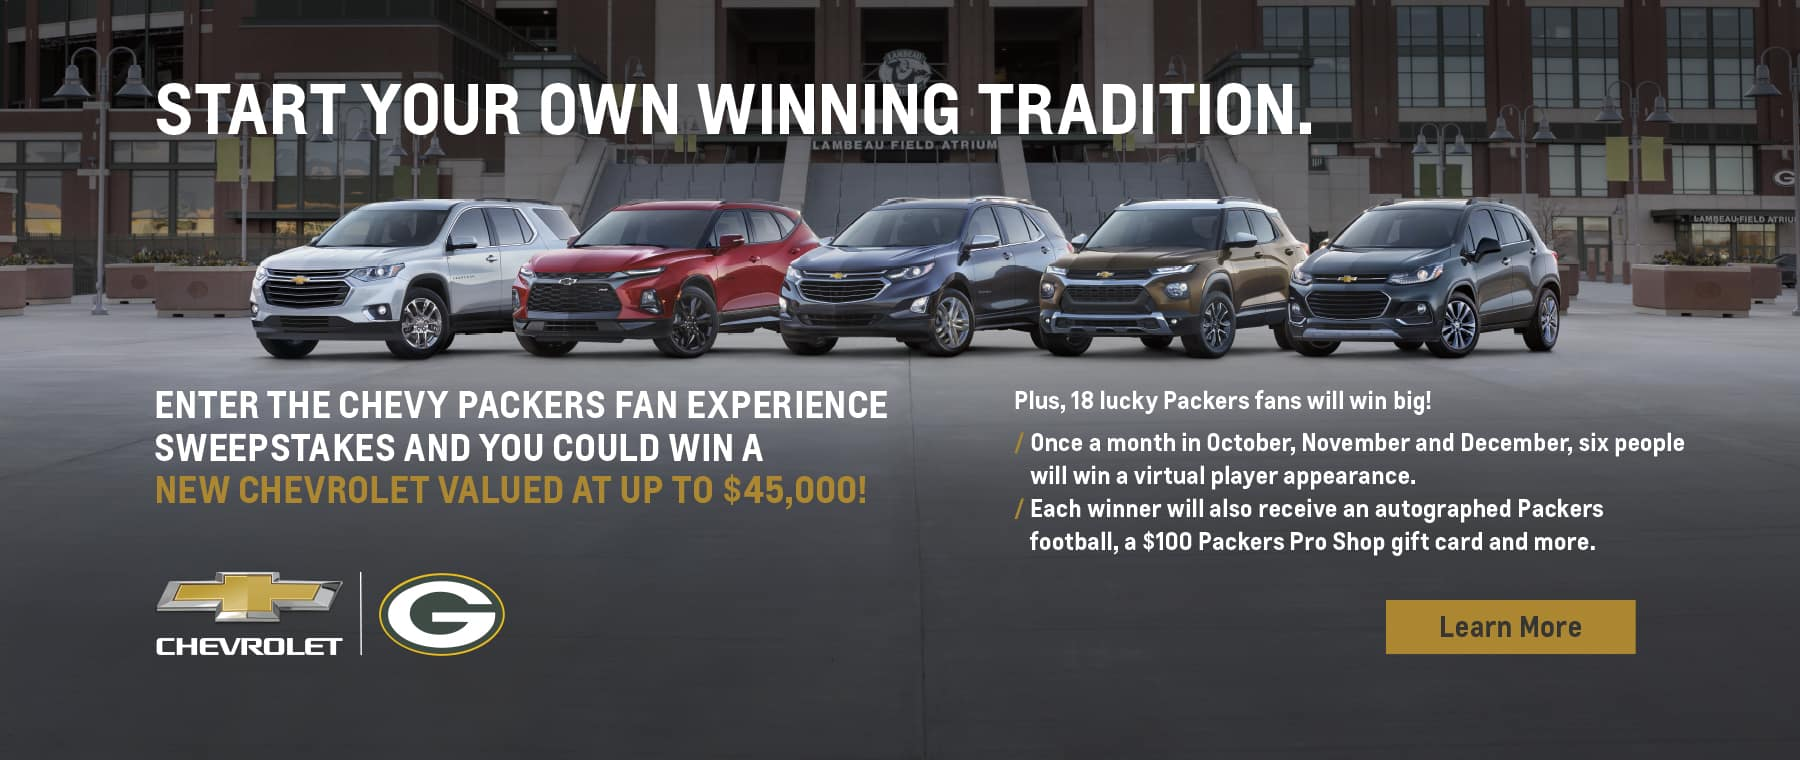 Chevrolet Packers Fan Experience Sweepstakes